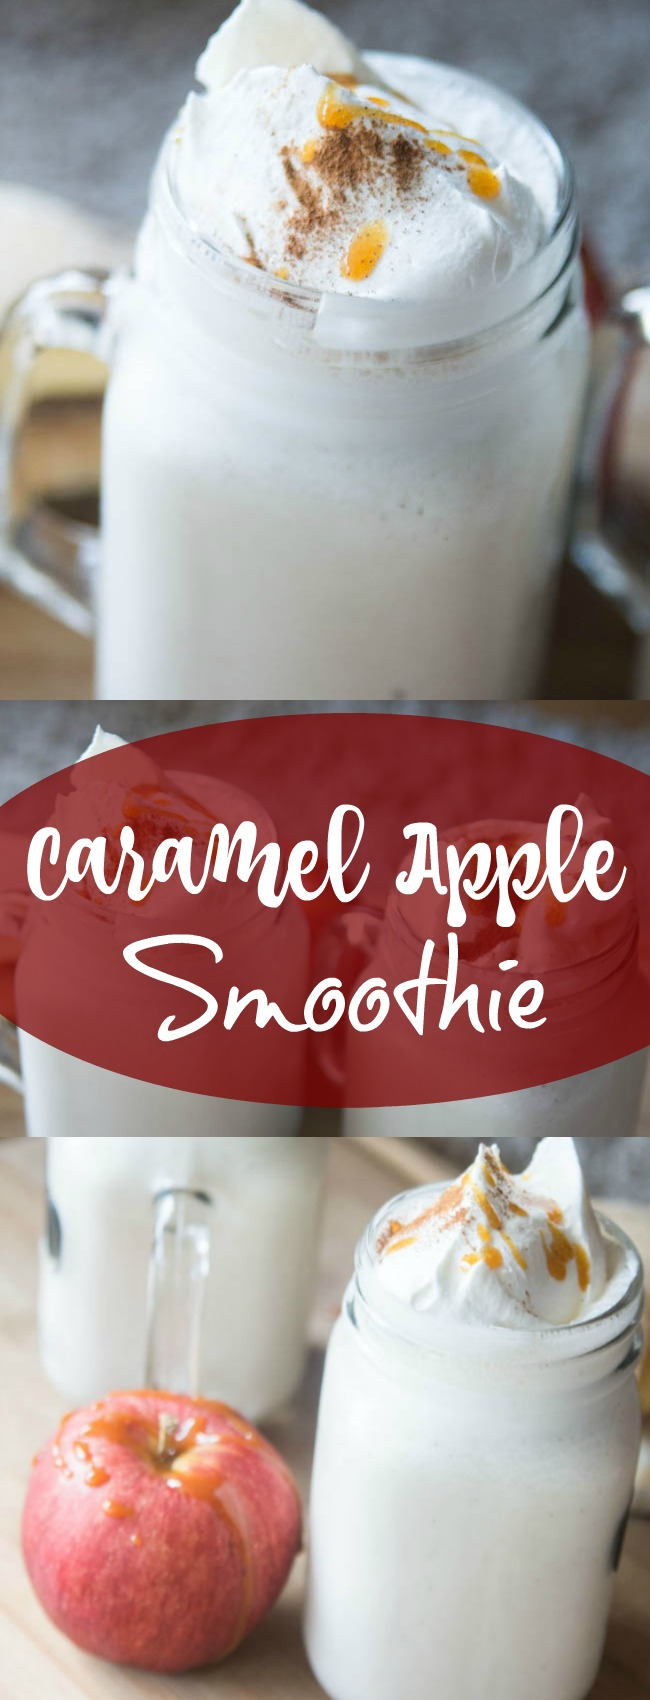 caramel-apple-smoothie